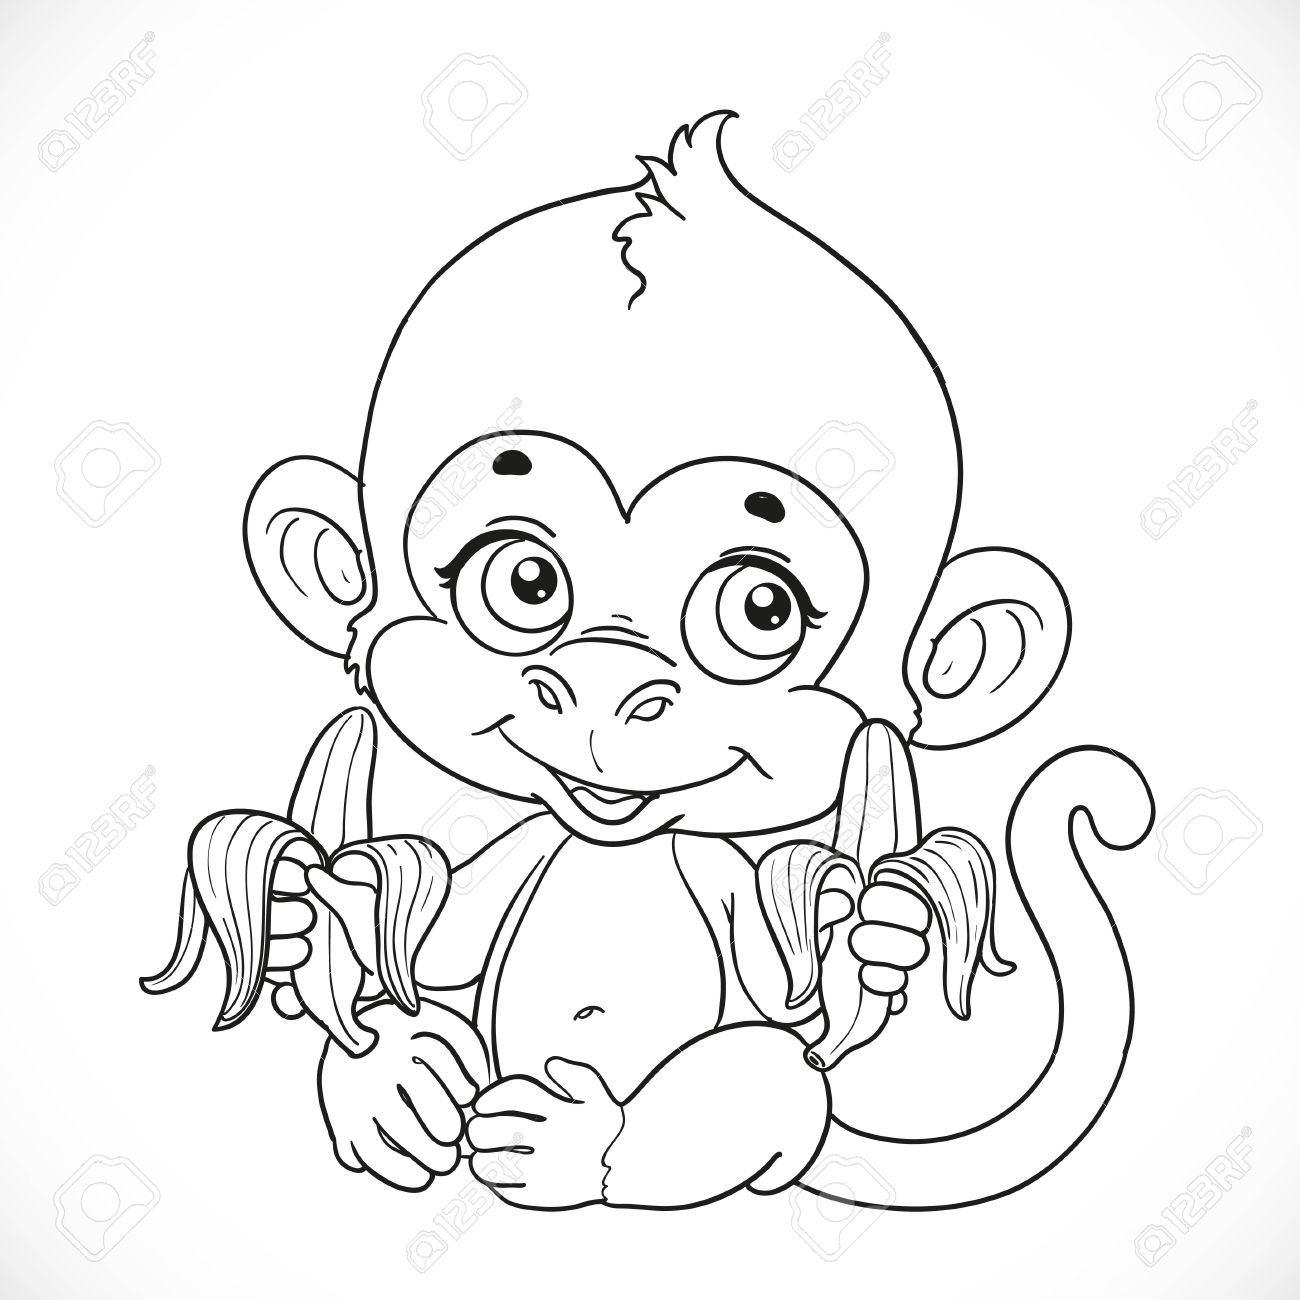 1300x1300 Cute Baby Monkey Drawings Cute Baby Monkey Drawings Cute Baby